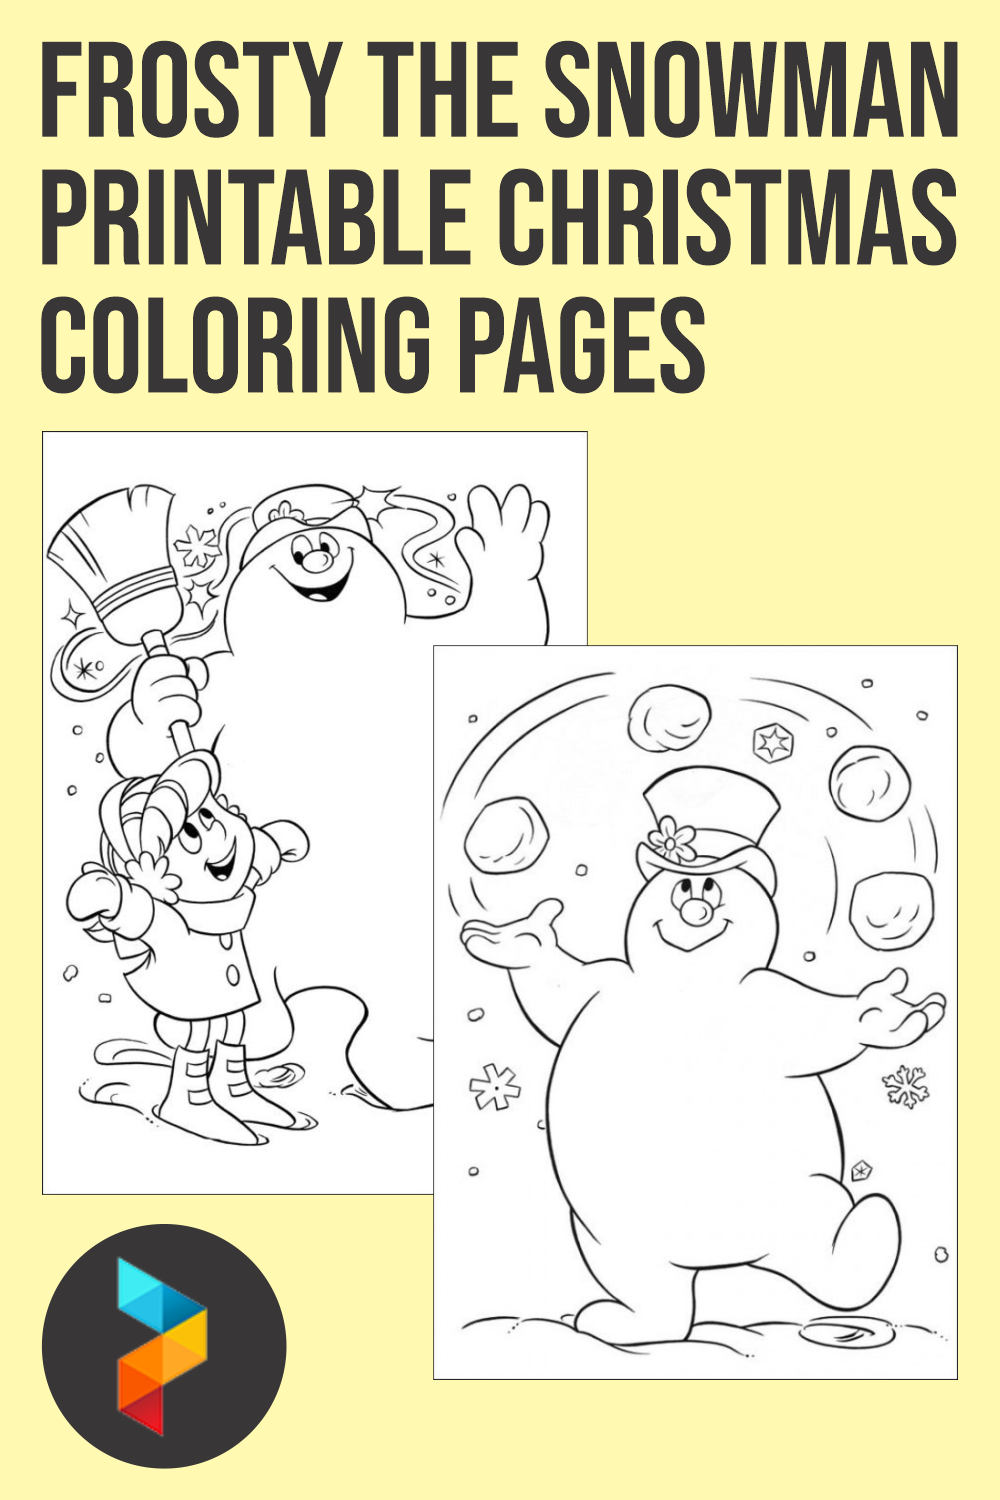 Frosty The Snowman Printable Christmas Coloring Pages